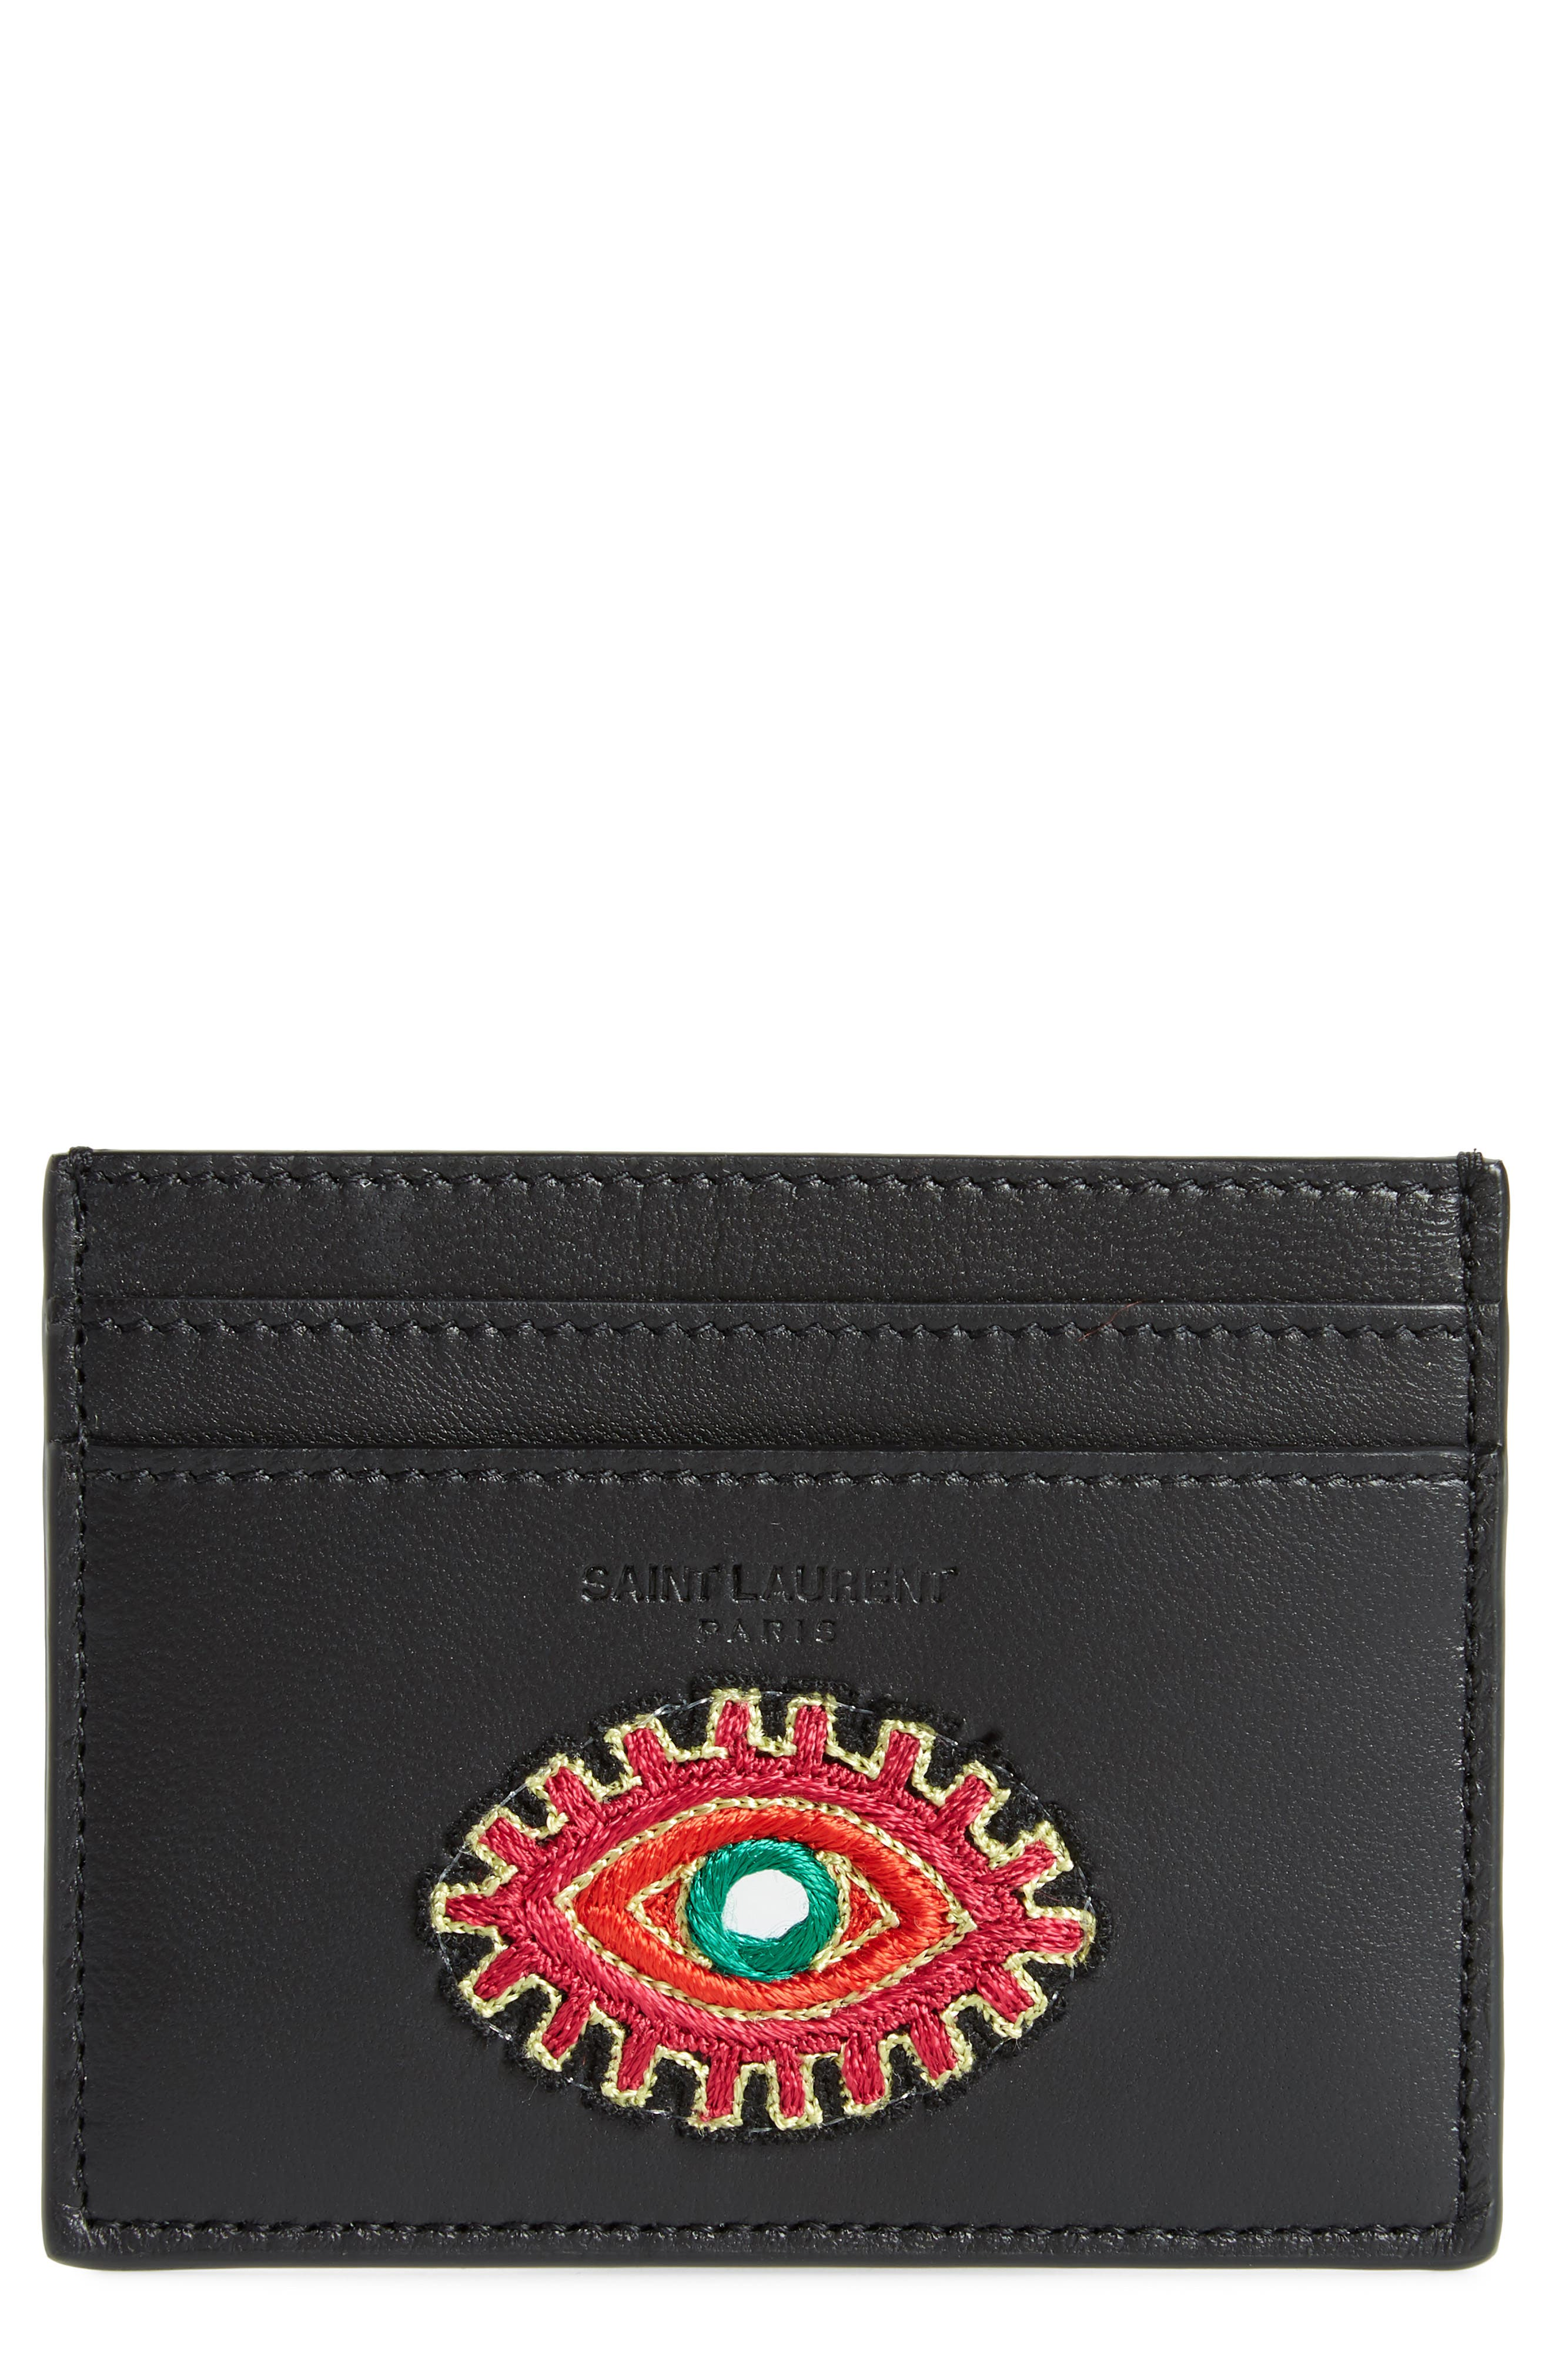 Main Image - Saint Laurent Embroidered Patch Leather Card Case